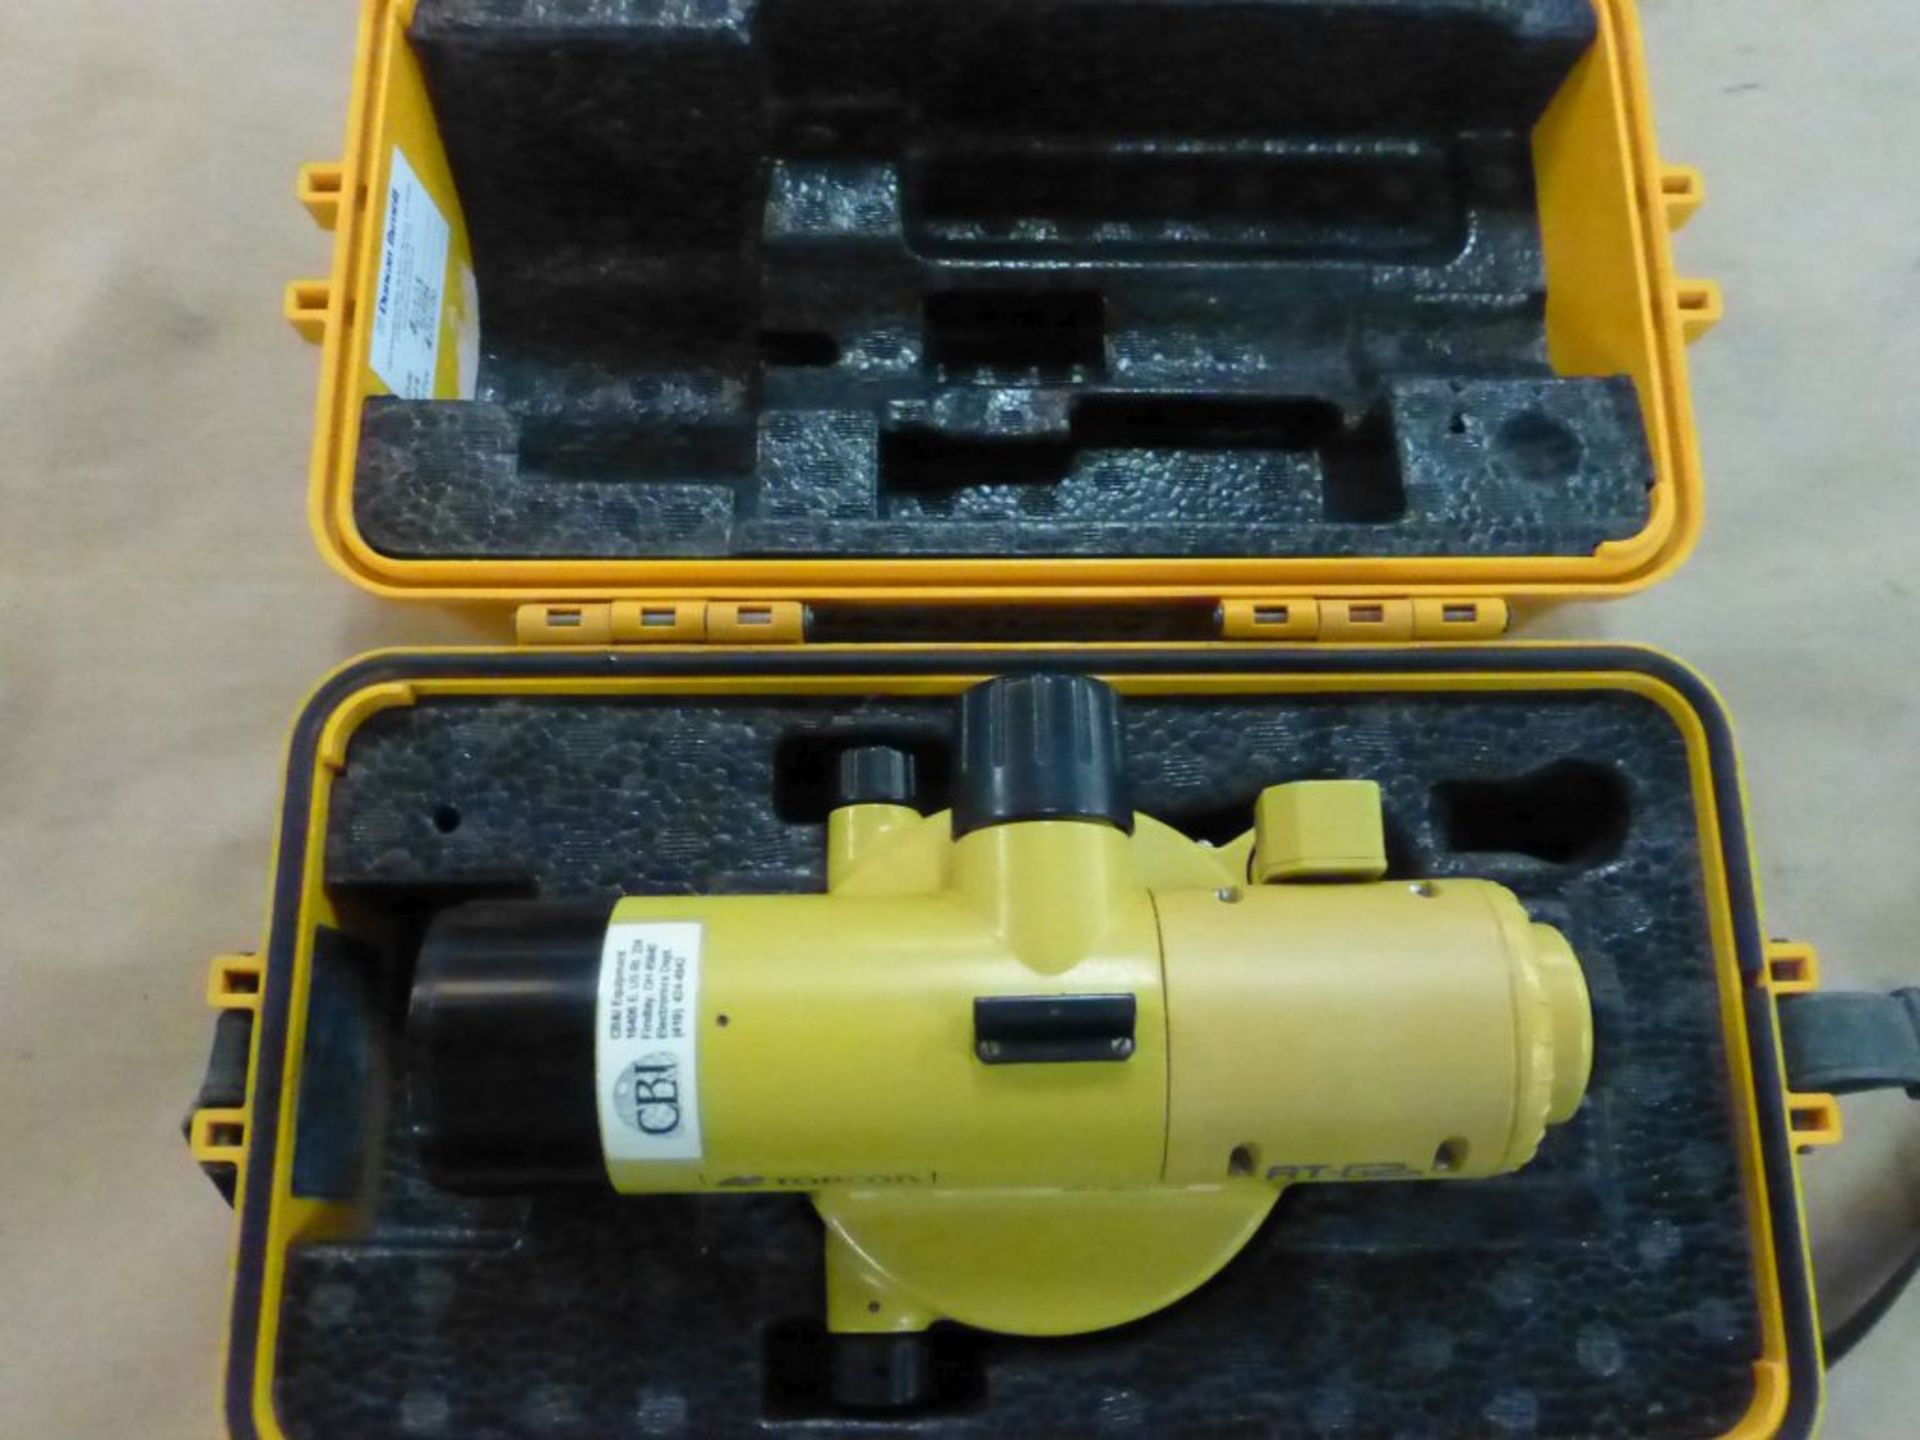 Topcon AT-G2A Auto Level | Case - Image 4 of 10